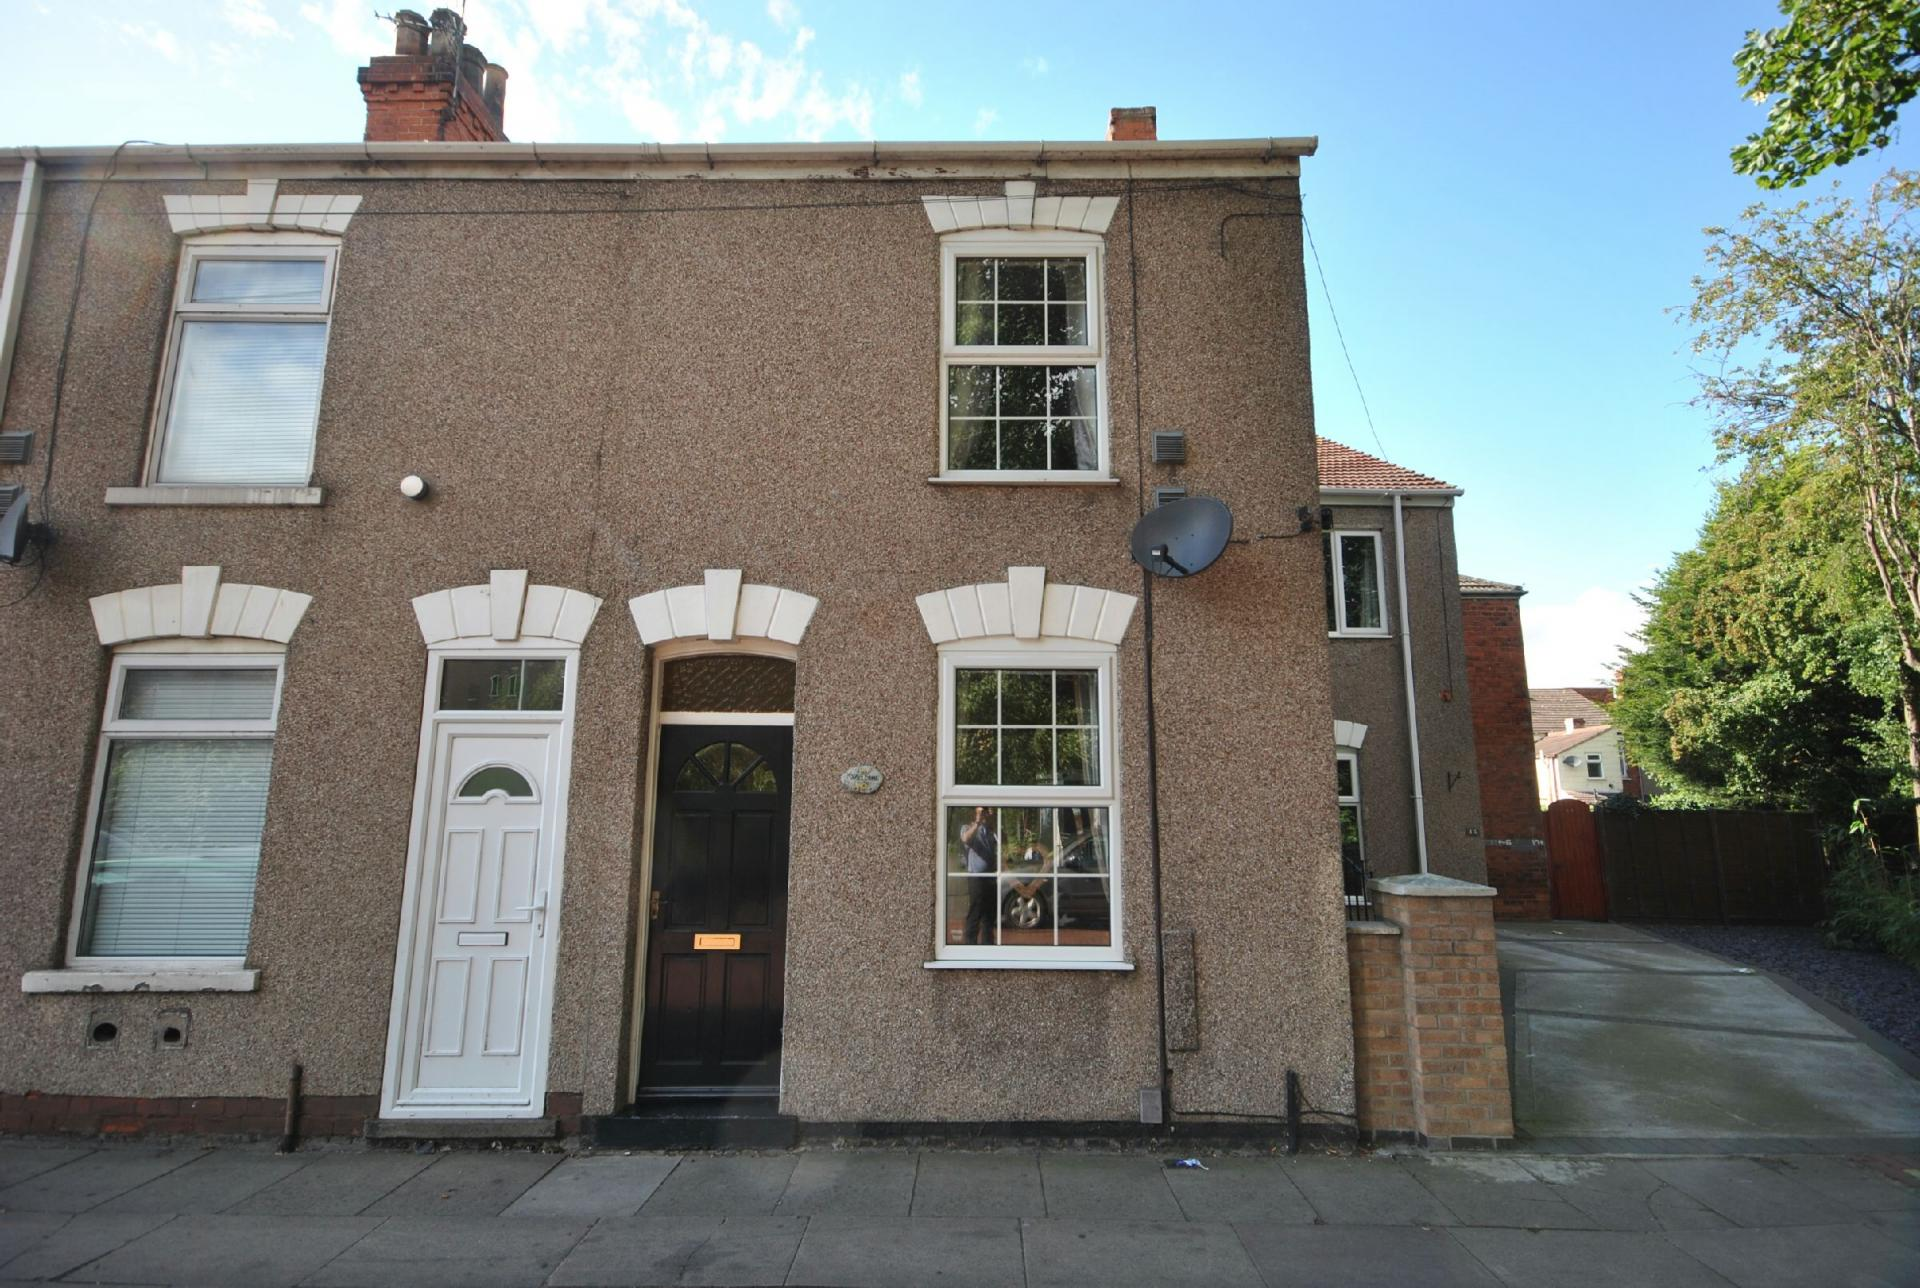 2 bedroom terraced house for sale in grimsby